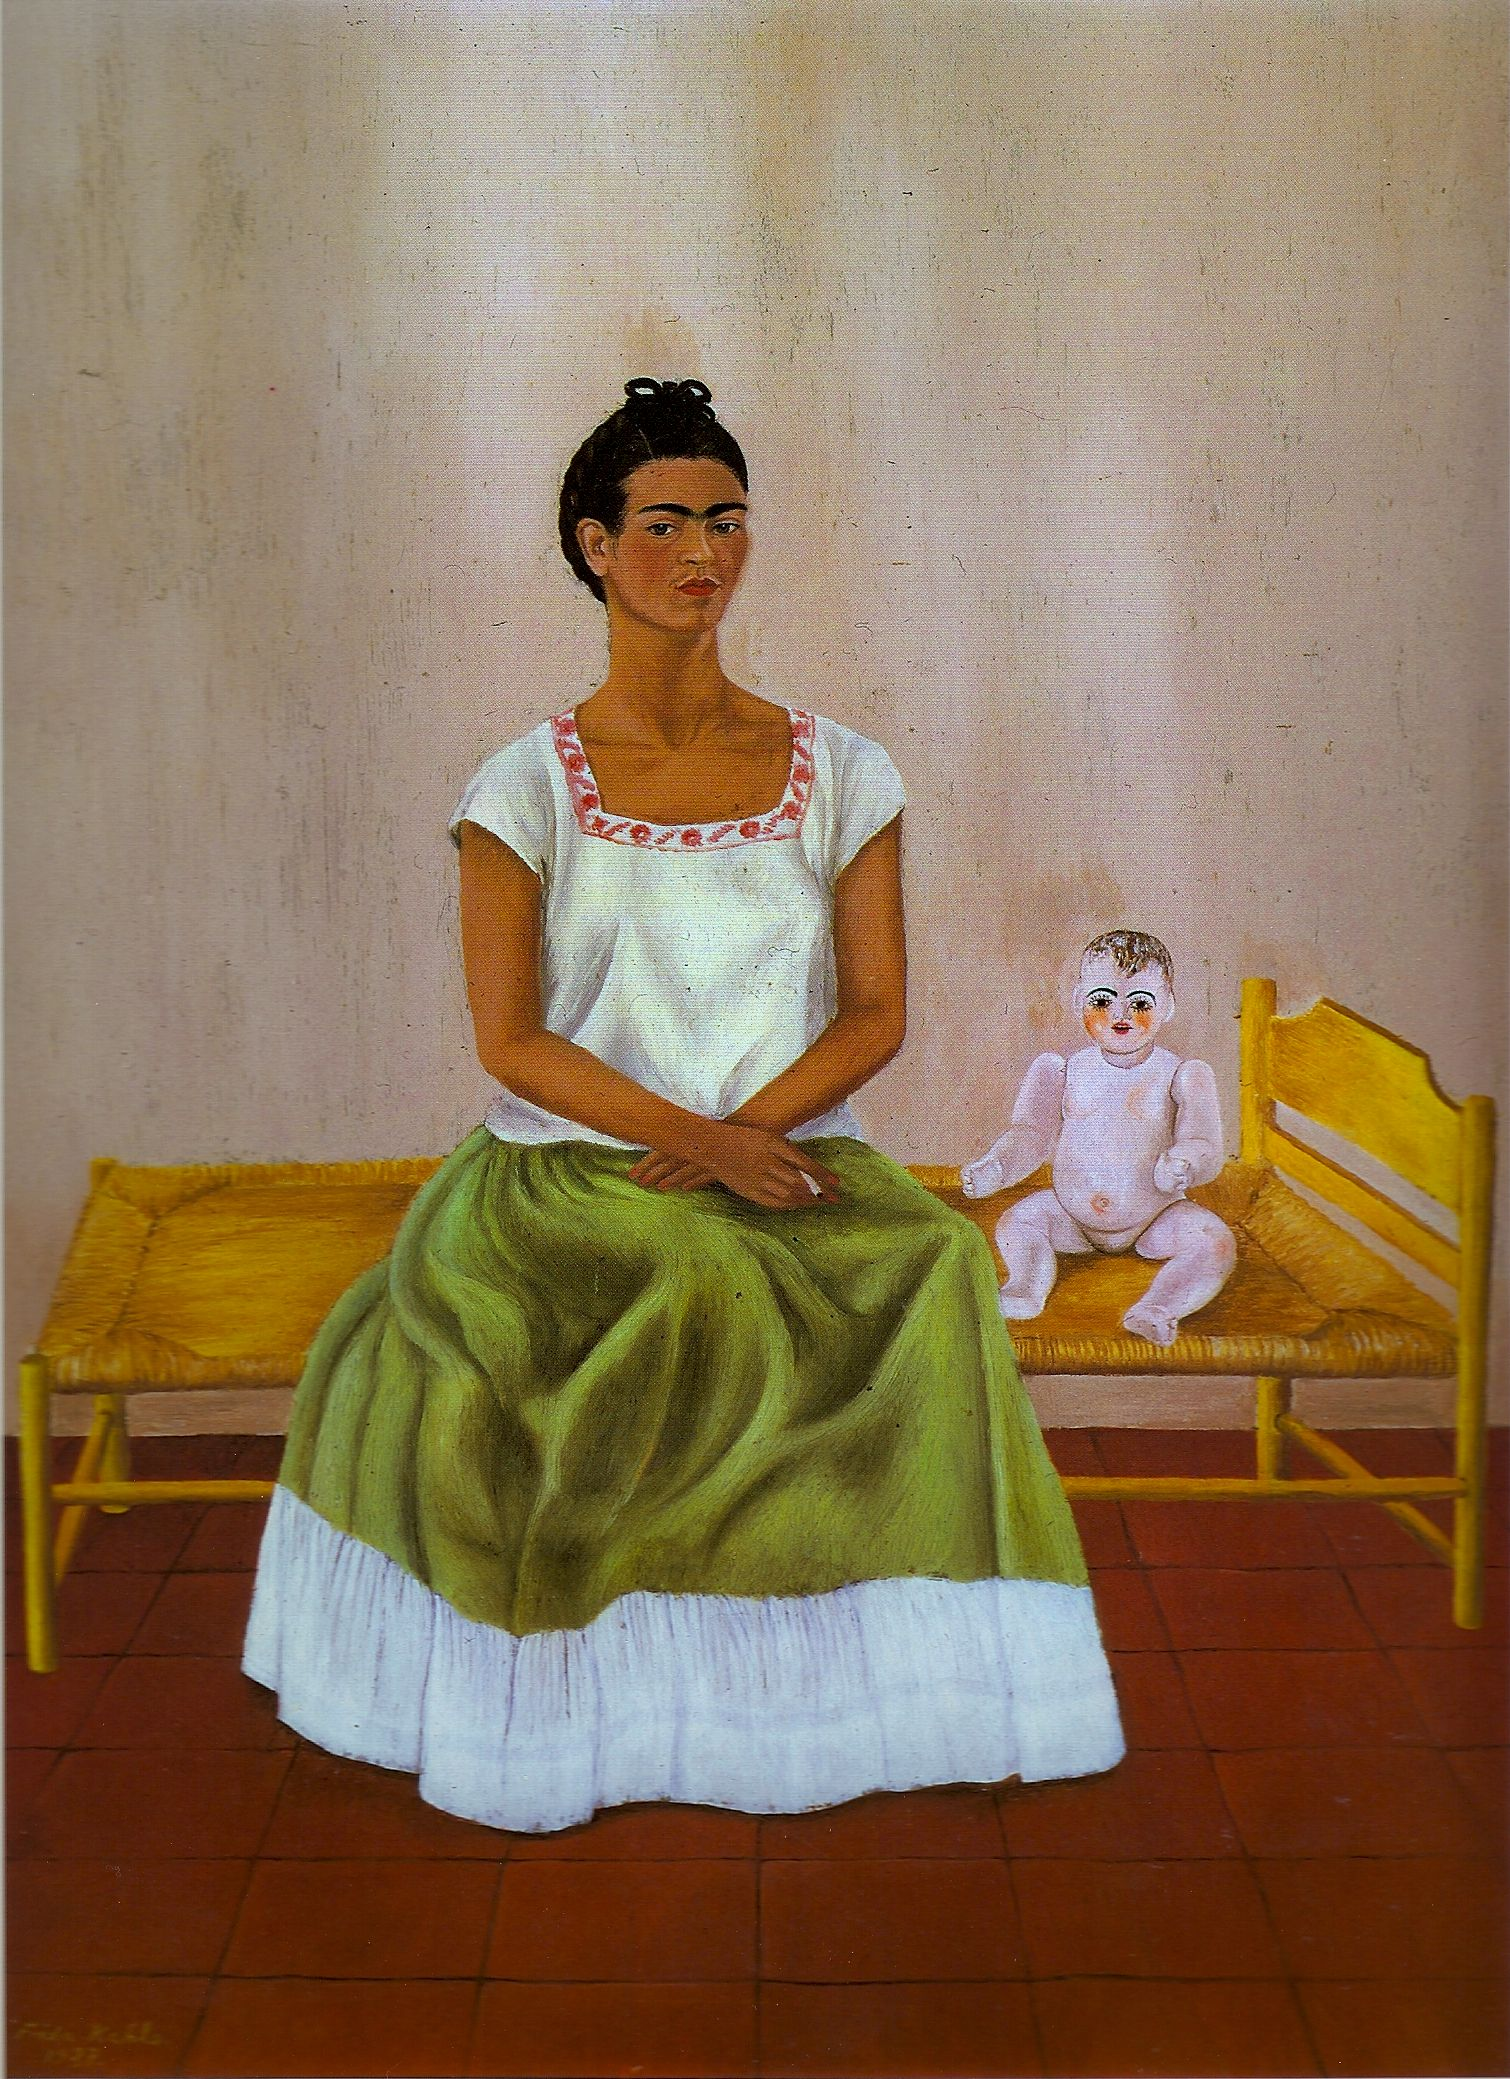 Frida Kahlo Pinturas Head To Head Frida Kahlo And Diego Rivera Exhibition In